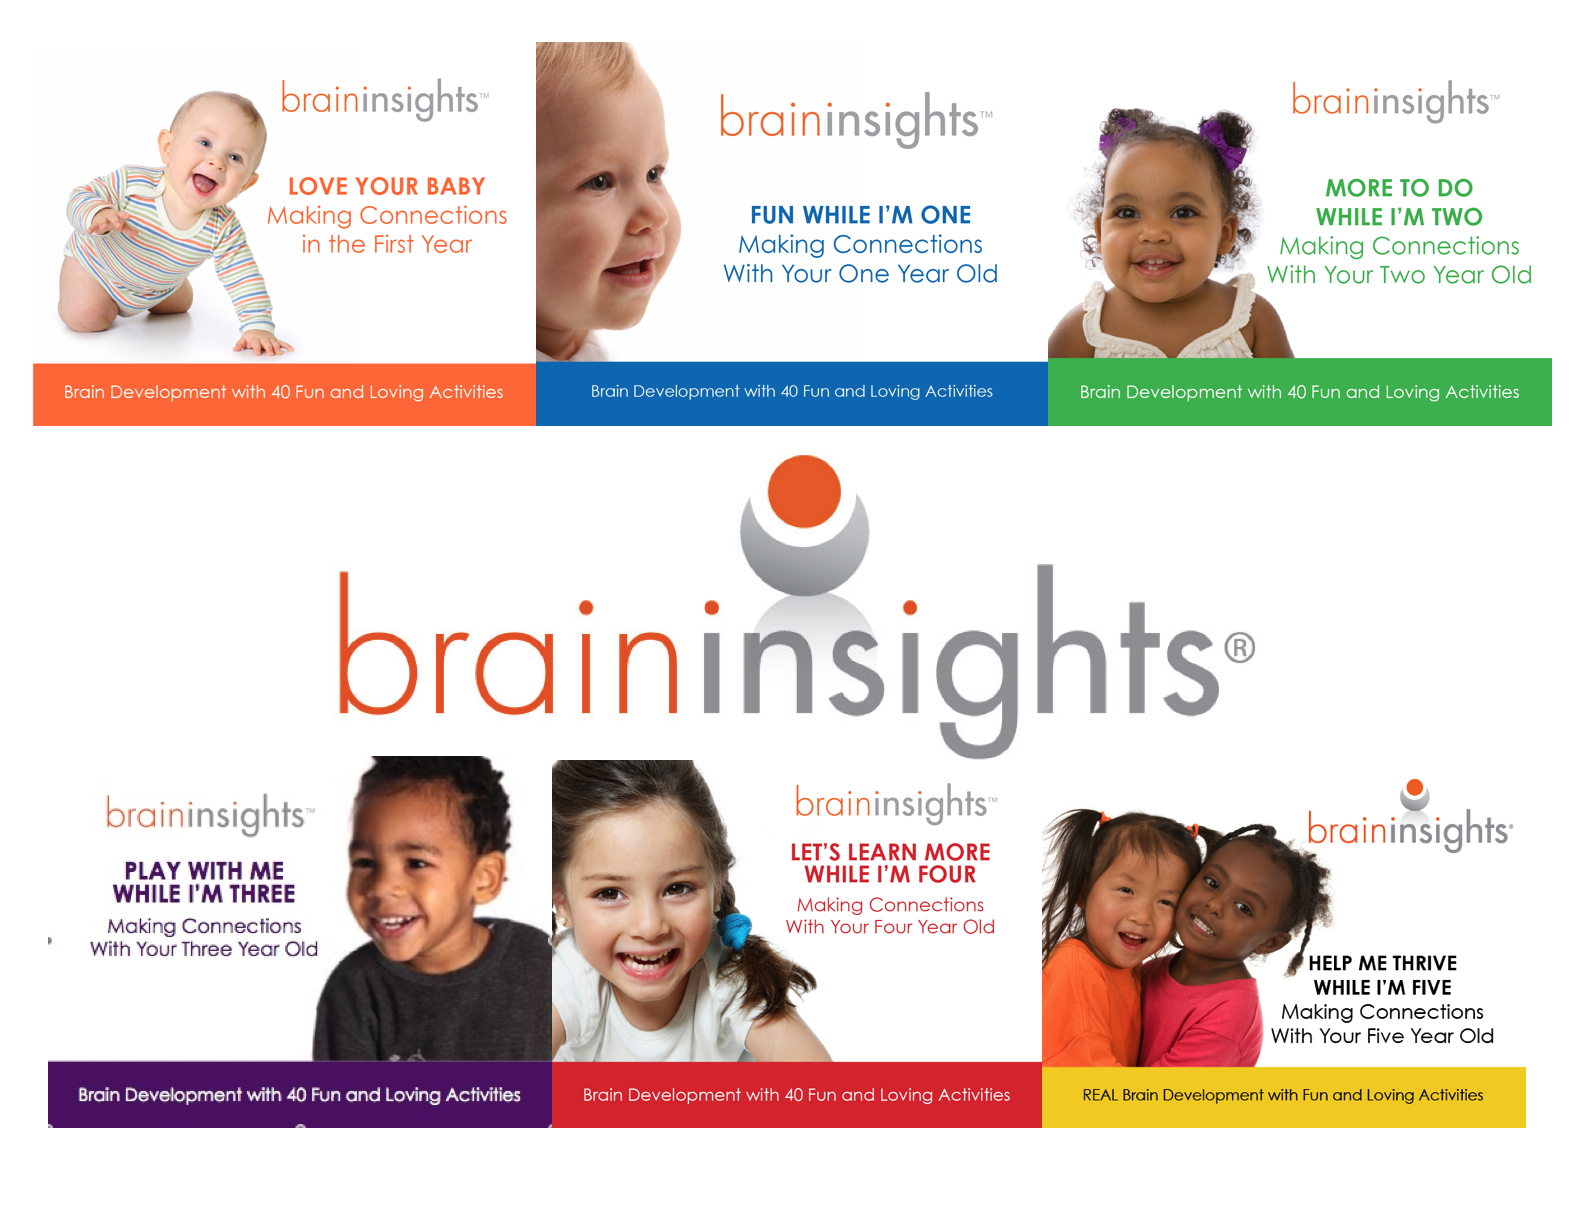 Making Brain Development fun and easy - Even during your busy life!  wwwbraininsightsonline.com